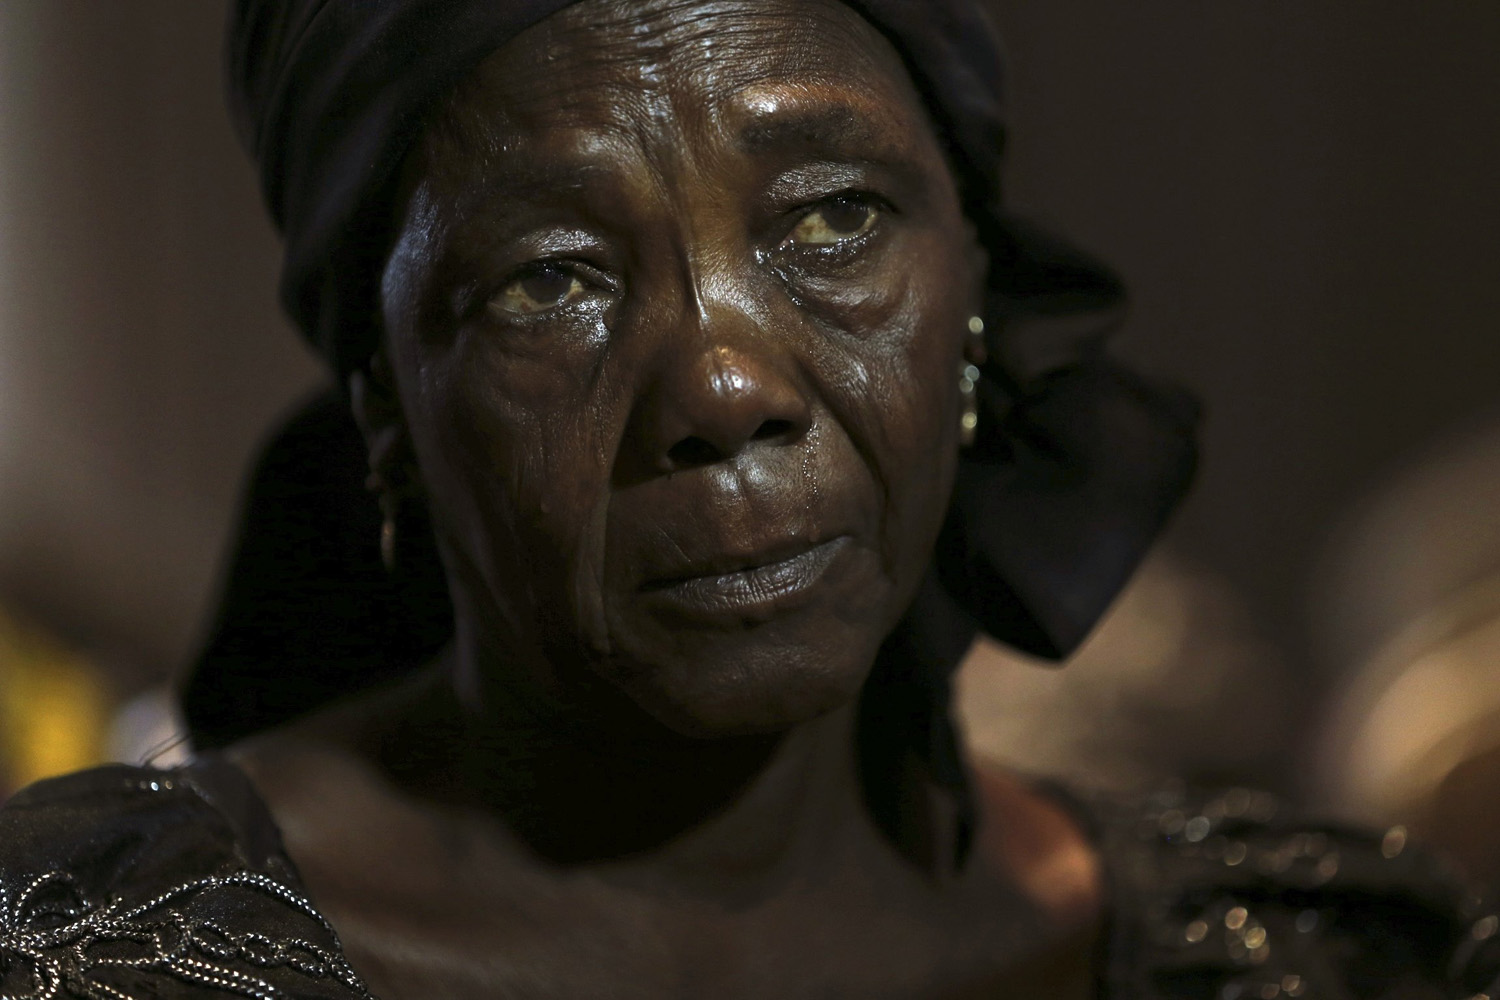 June 5, 2014. Hauwa Nkaki, mother of one of more than 200 girls abducted in the remote village of Chibok, cries as she reacts during a news conference on the girls in Lagos , Nigeria.